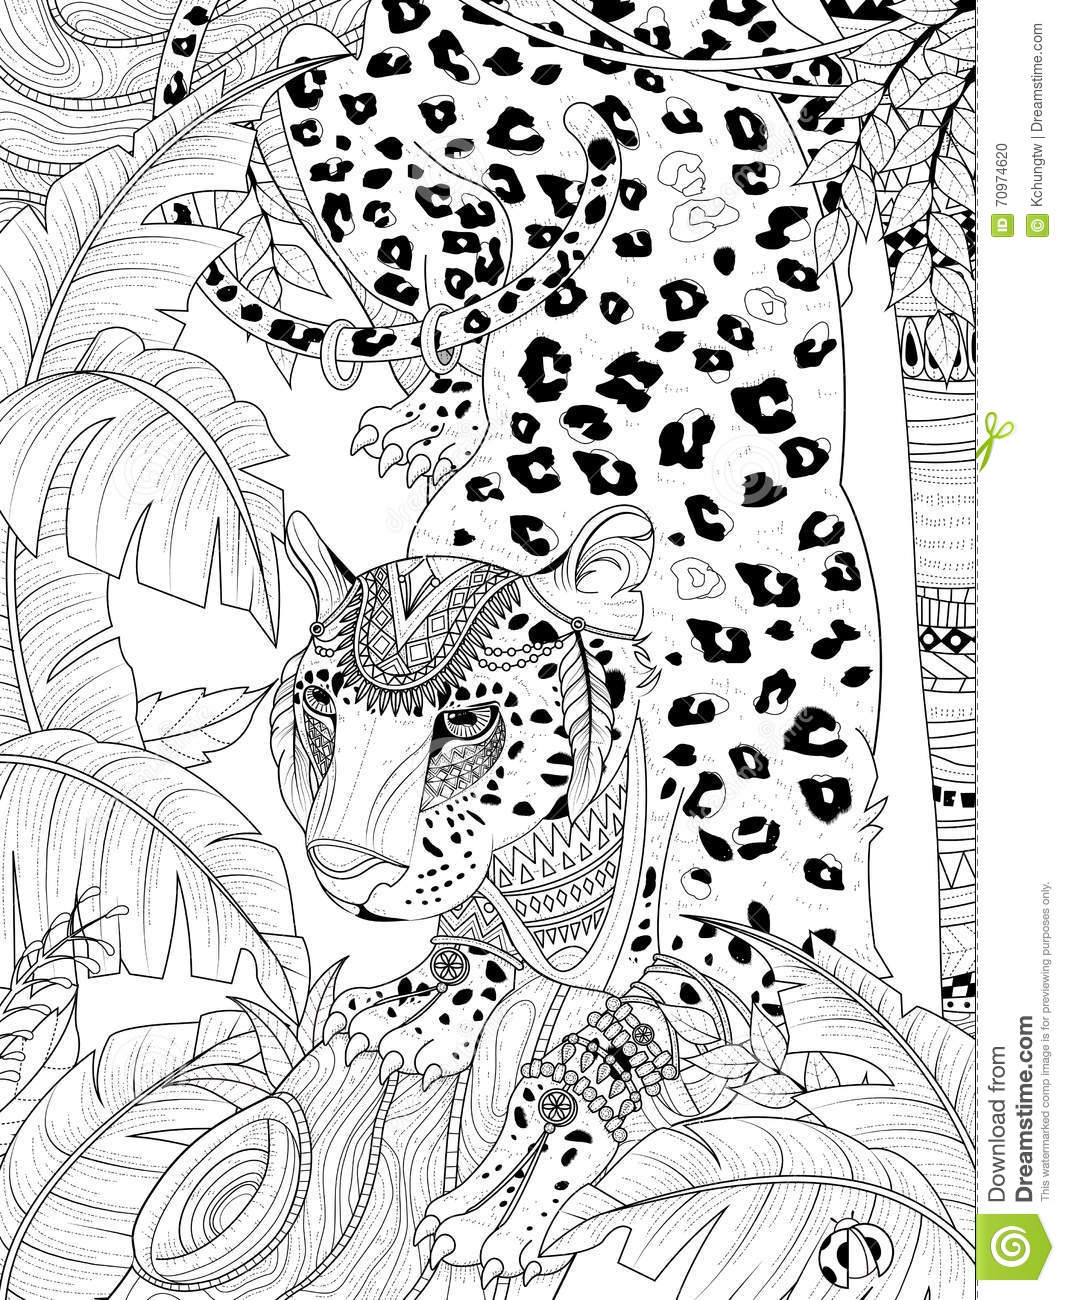 Free coloring pages leopard - Adult Coloring Jungle Leopard Page